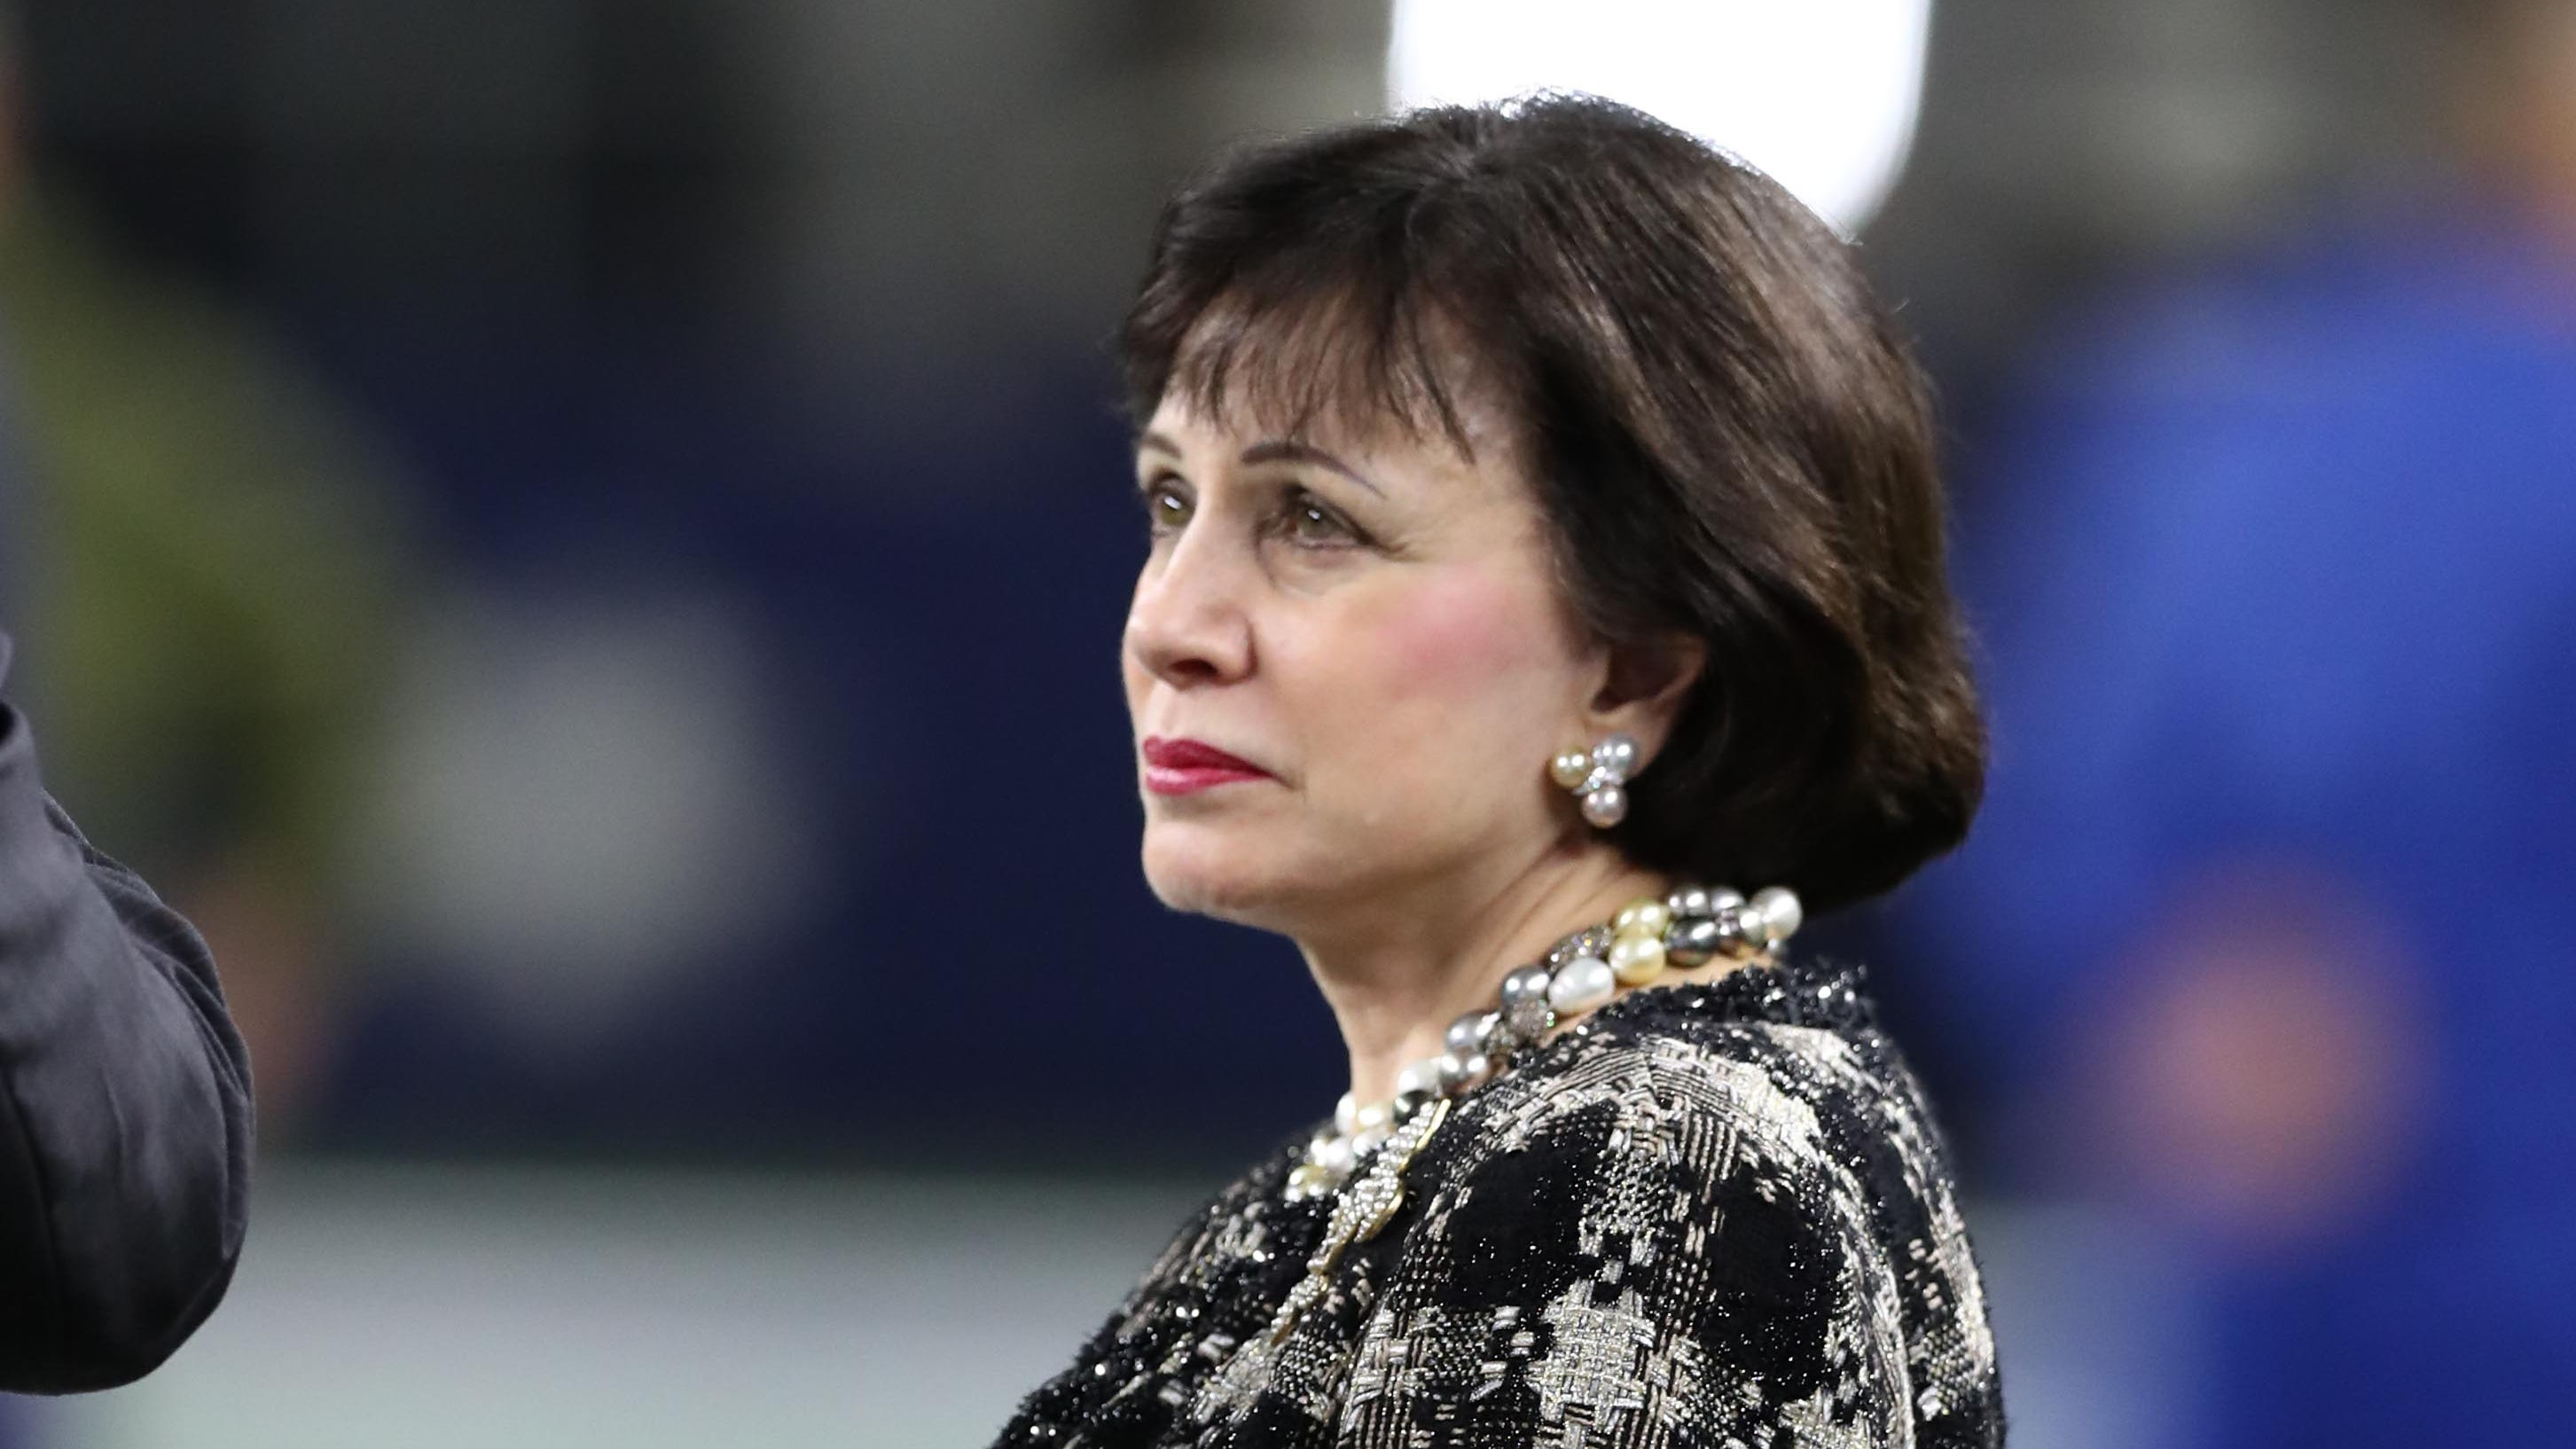 New Orleans Saints owner Gayle Benson on the sidelines prior to the game against the Dallas Cowboys at AT&T Stadium.